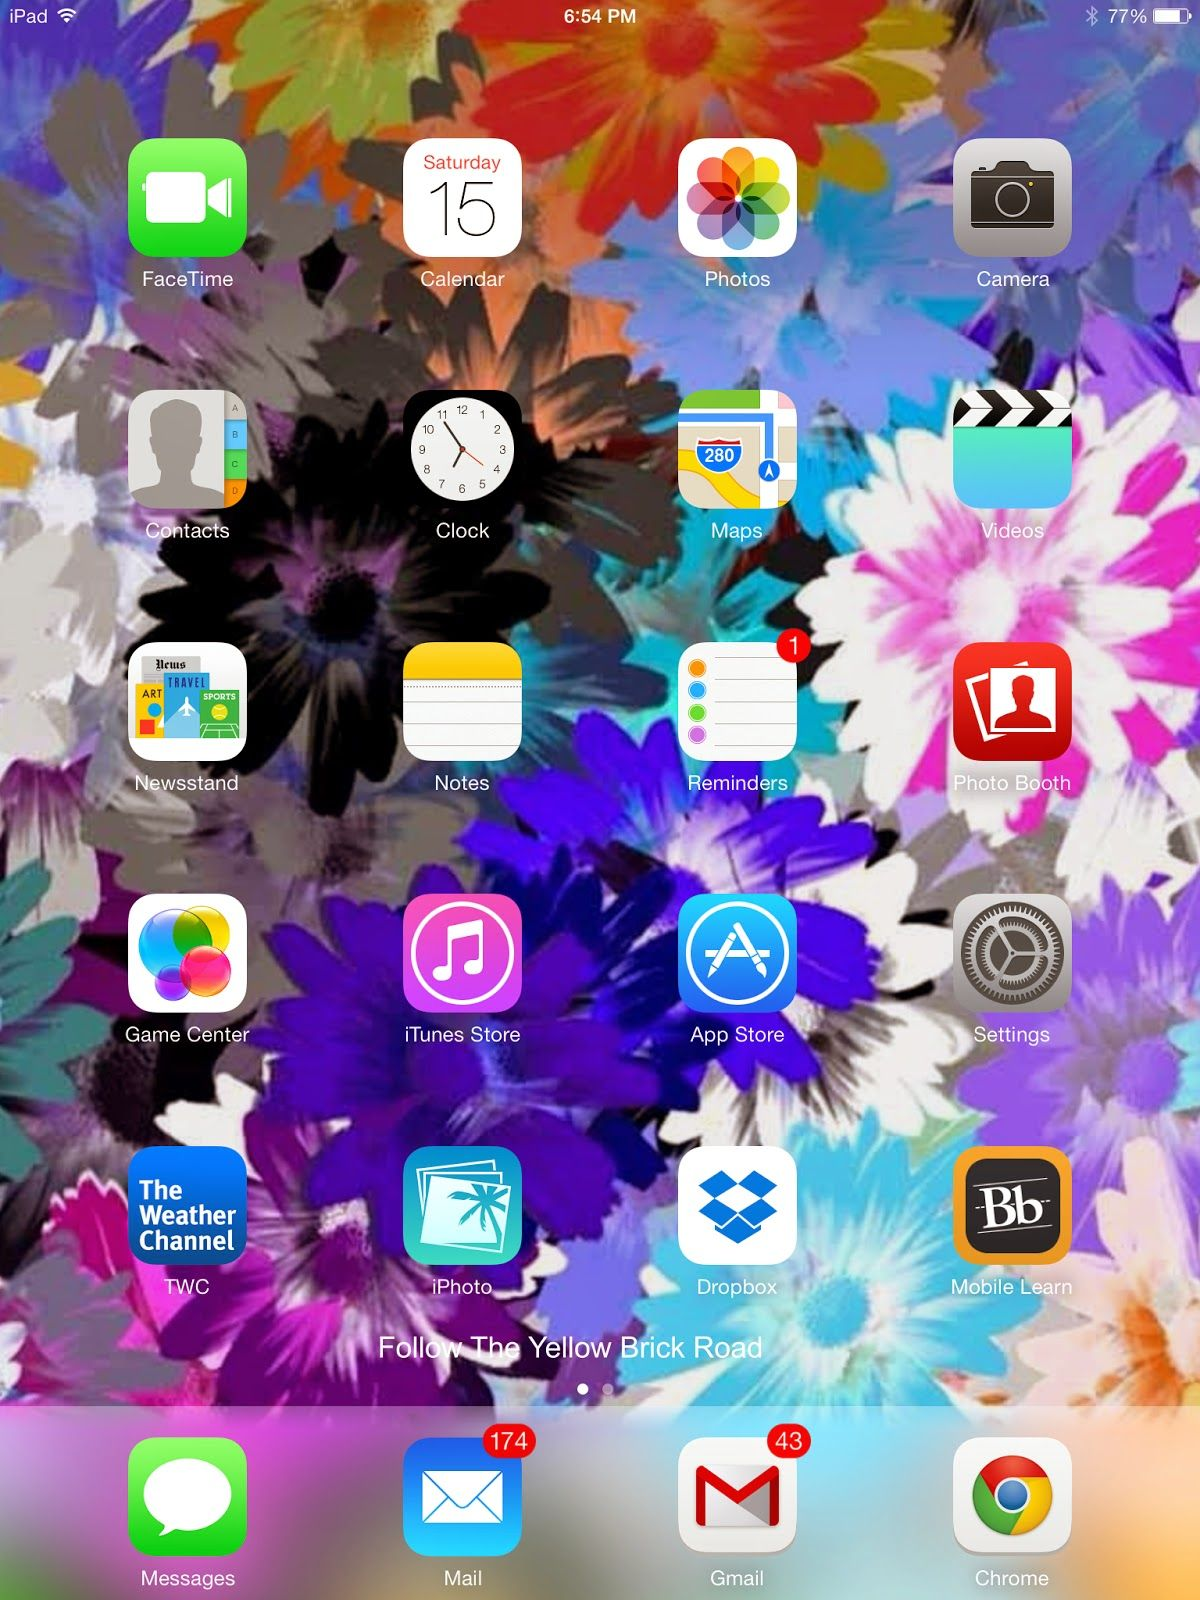 Follow The Yellow Brick Road Whats On My Ipad Mini With